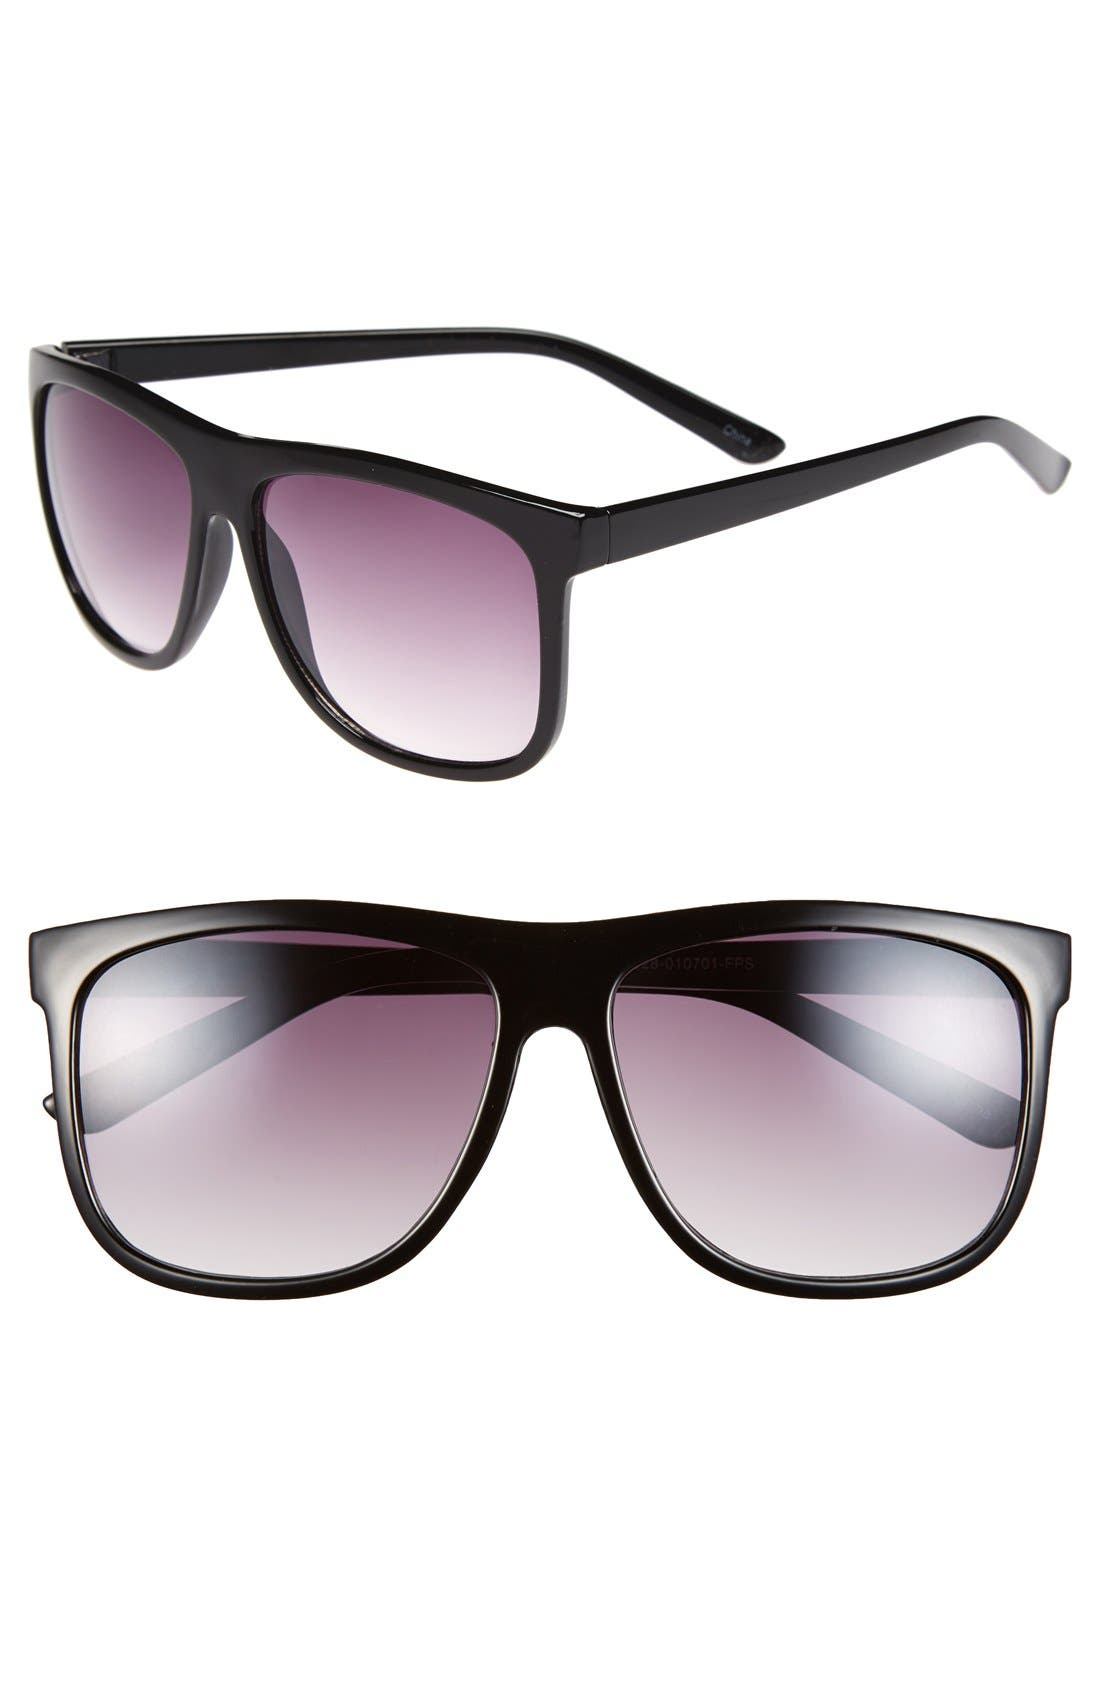 Alternate Image 1 Selected - Icon Eyewear Retro Sunglasses